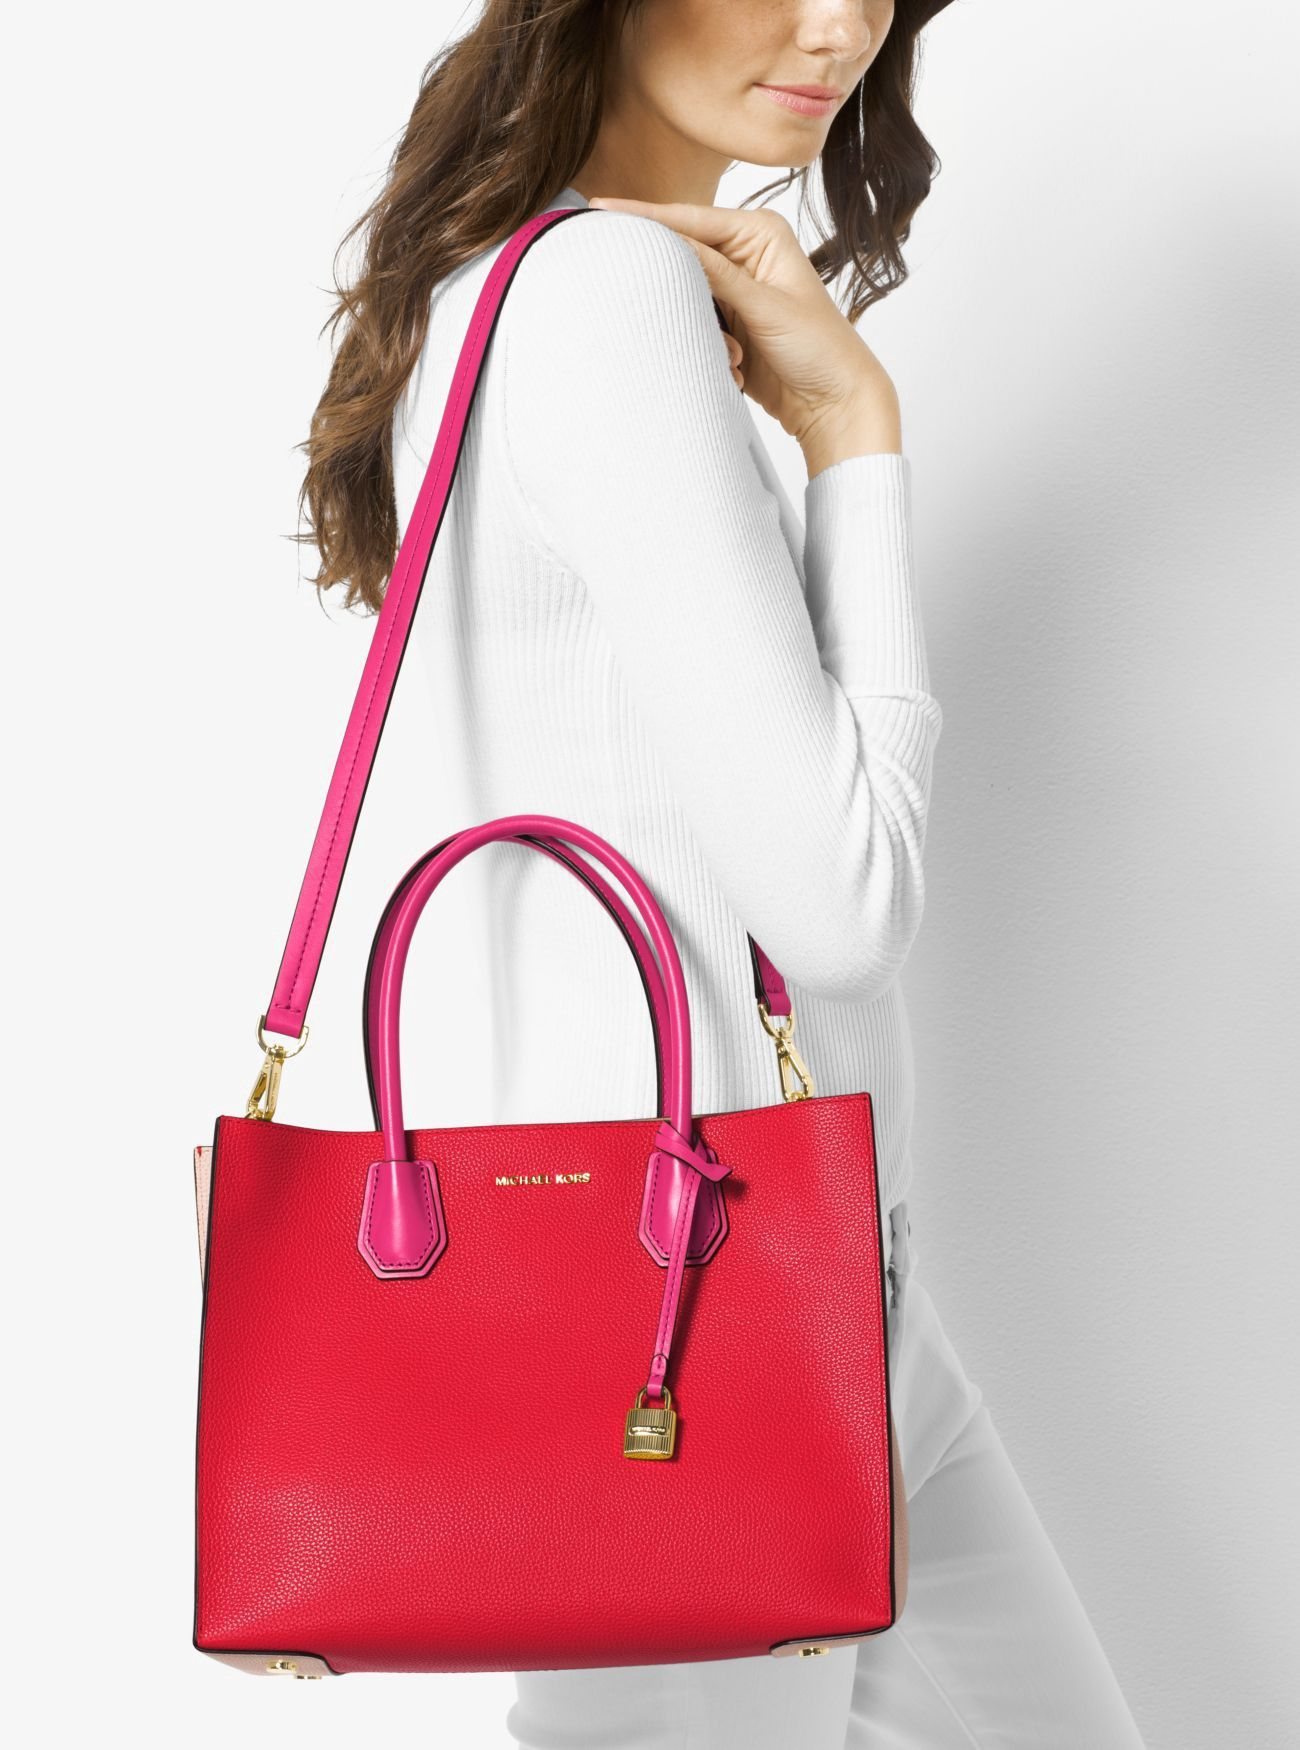 e74585d6ead80 Mercer Large Color-Block Leather Tote by Michael Kors in 2018 ...